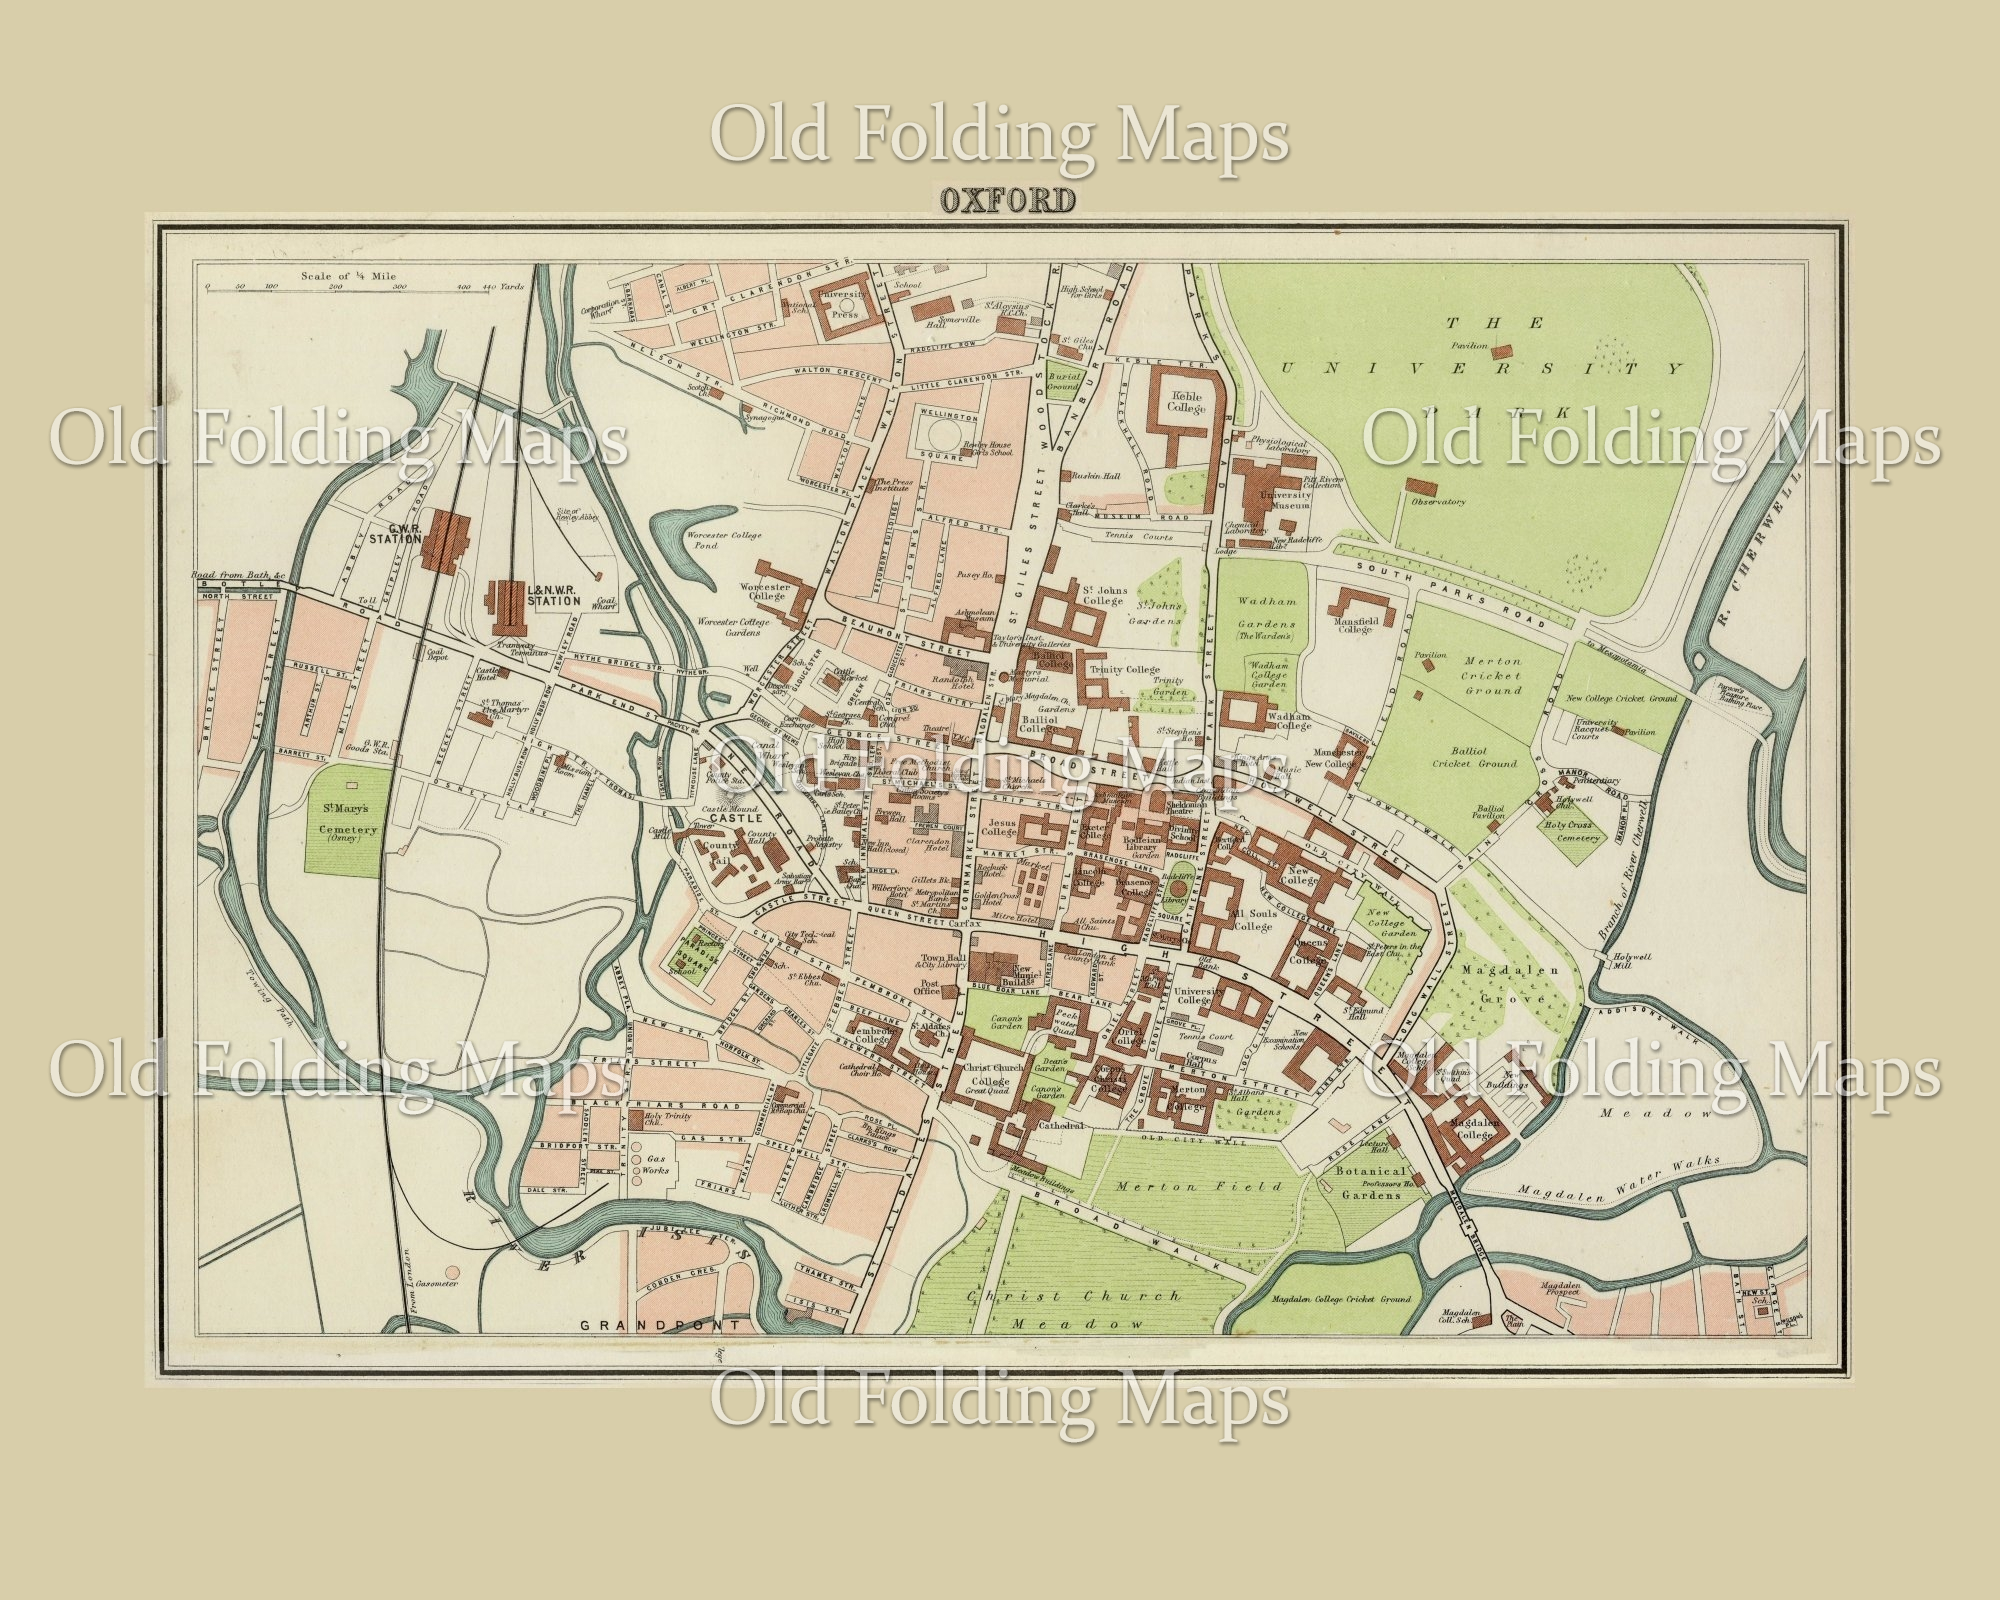 Old Map of Oxford, England circa 1895